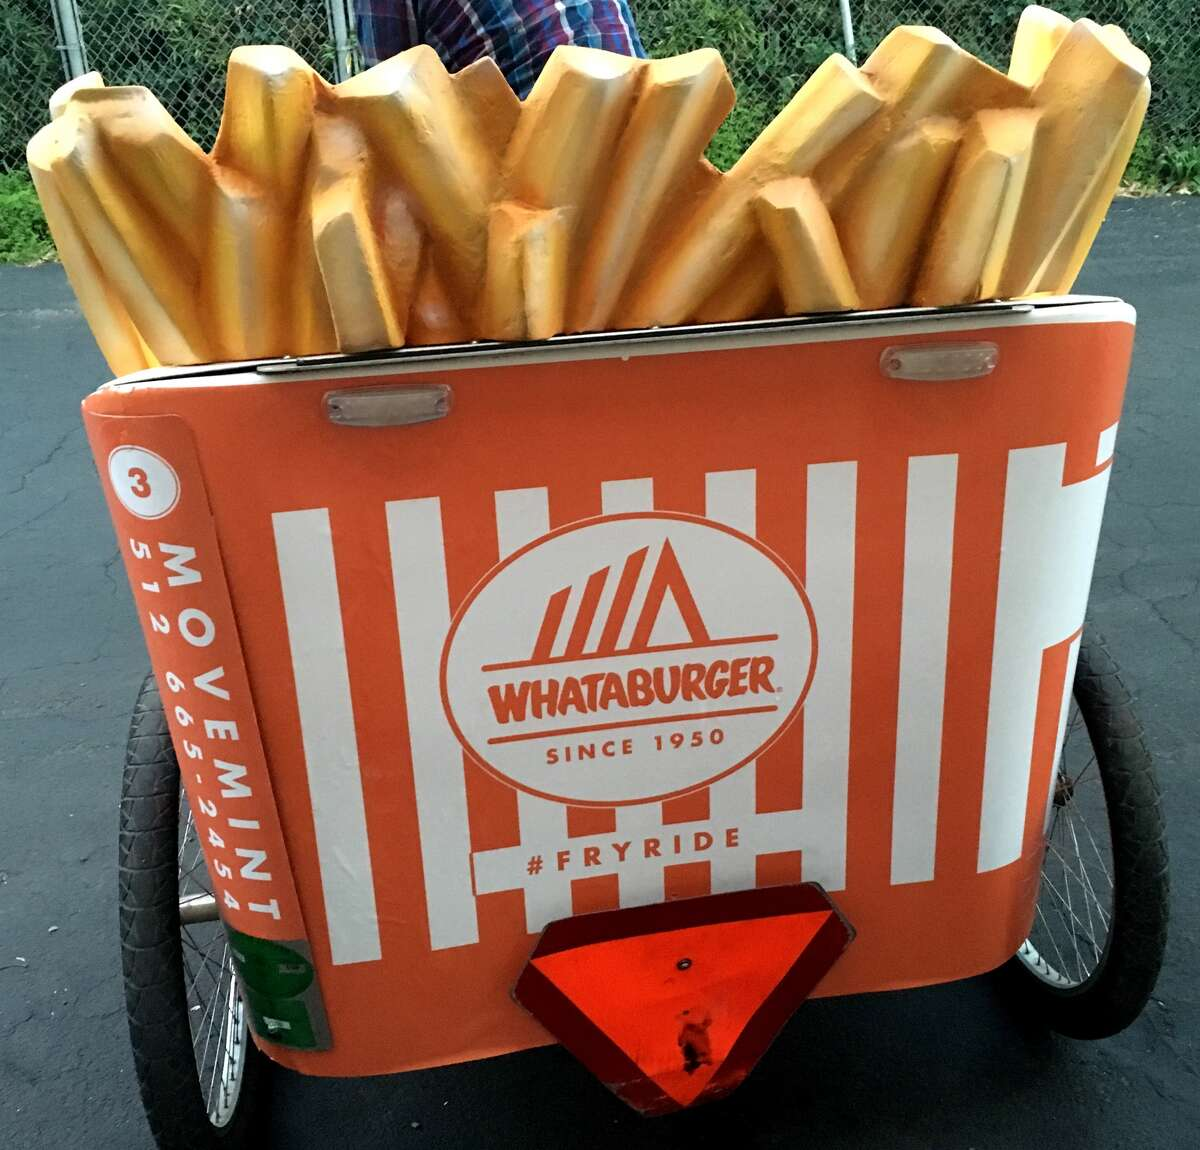 San Antonio will invade Austin during South by Southwest with Whataburger in tow, because if the Alamo City is going to be on a pedestal for the world to see, it better be with the only other food locals love as much as tacos.